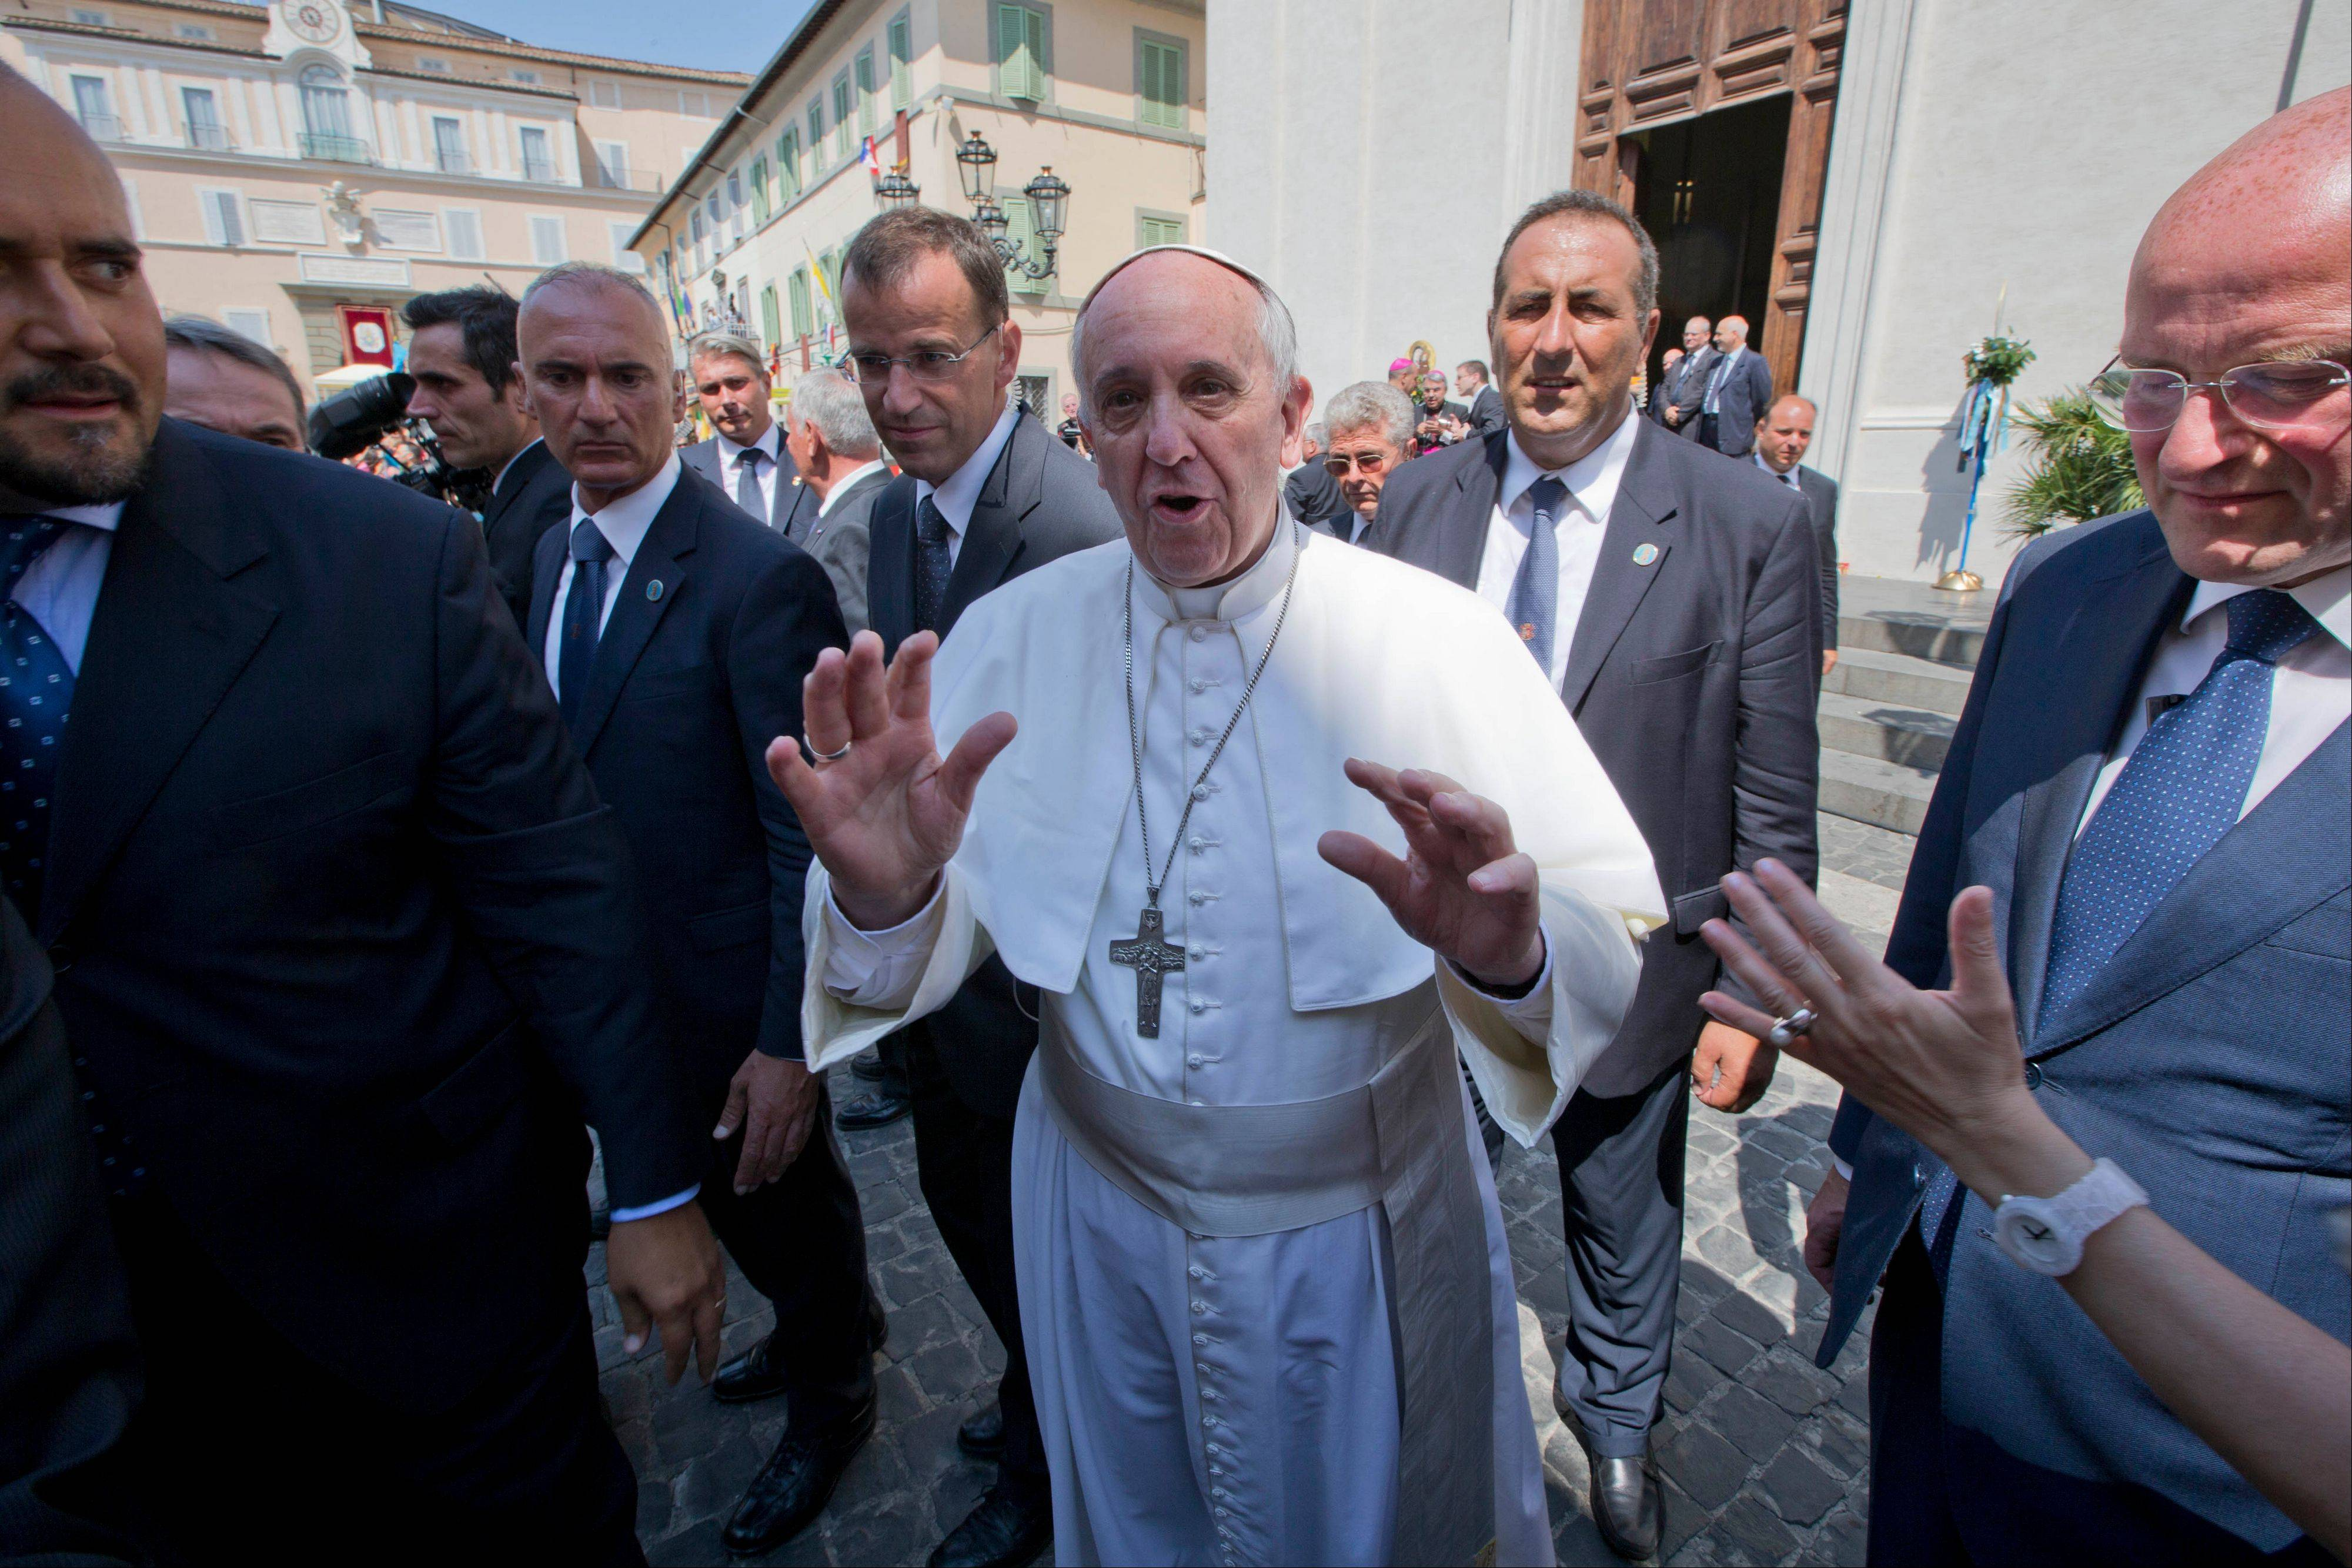 "Pope Francis said at the end of a Mass he celebrated Thursday that he wanted to assure his prayers to the victims, their families, the wounded and all those suffering in Egypt. He urged prayers for ""peace, dialogue and reconciliation for that dear land."""